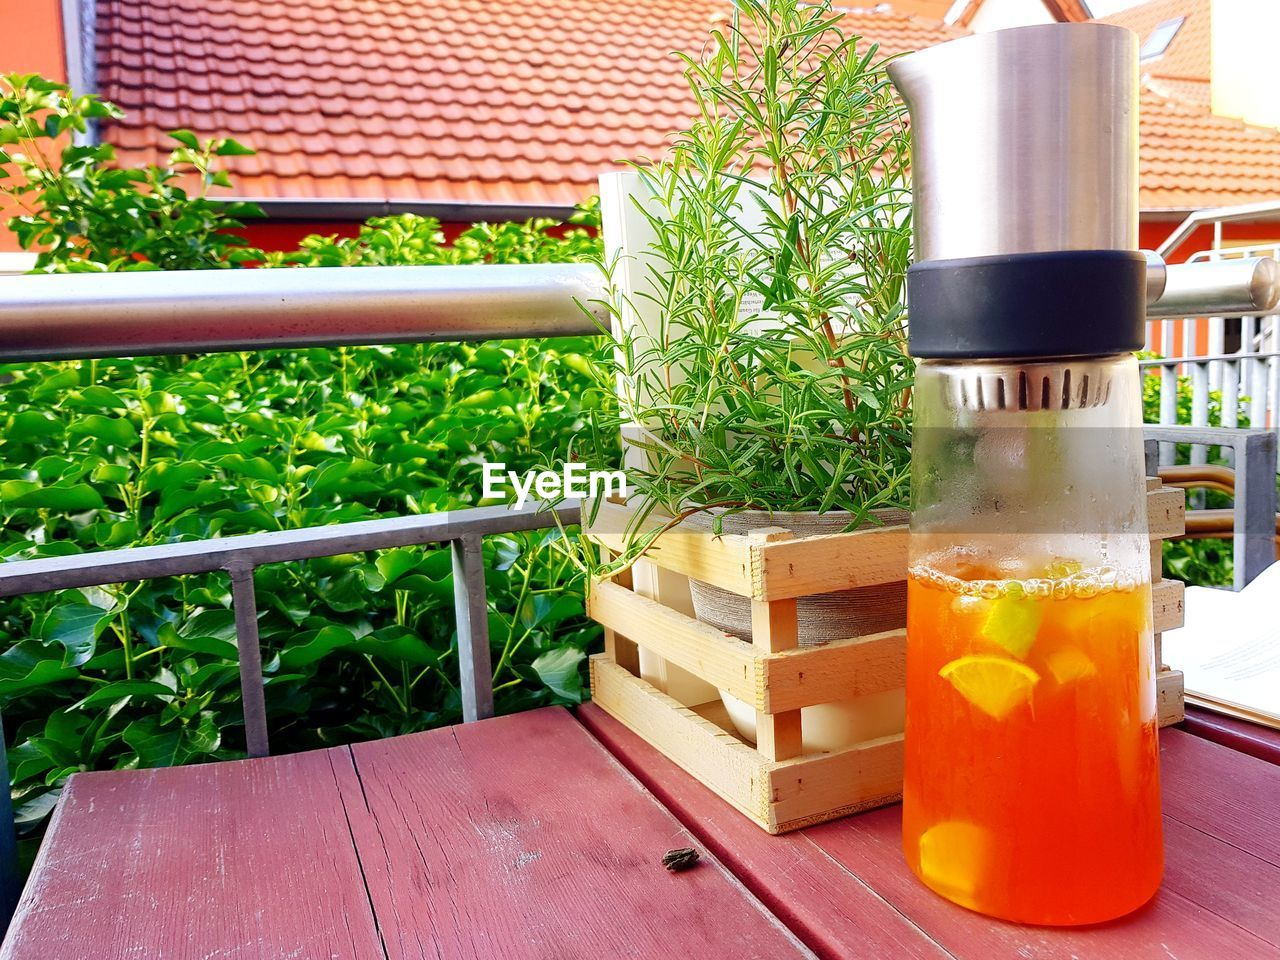 food and drink, plant, freshness, no people, table, growth, container, nature, refreshment, drink, indoors, wood - material, food, still life, glass - material, glass, seat, green color, potted plant